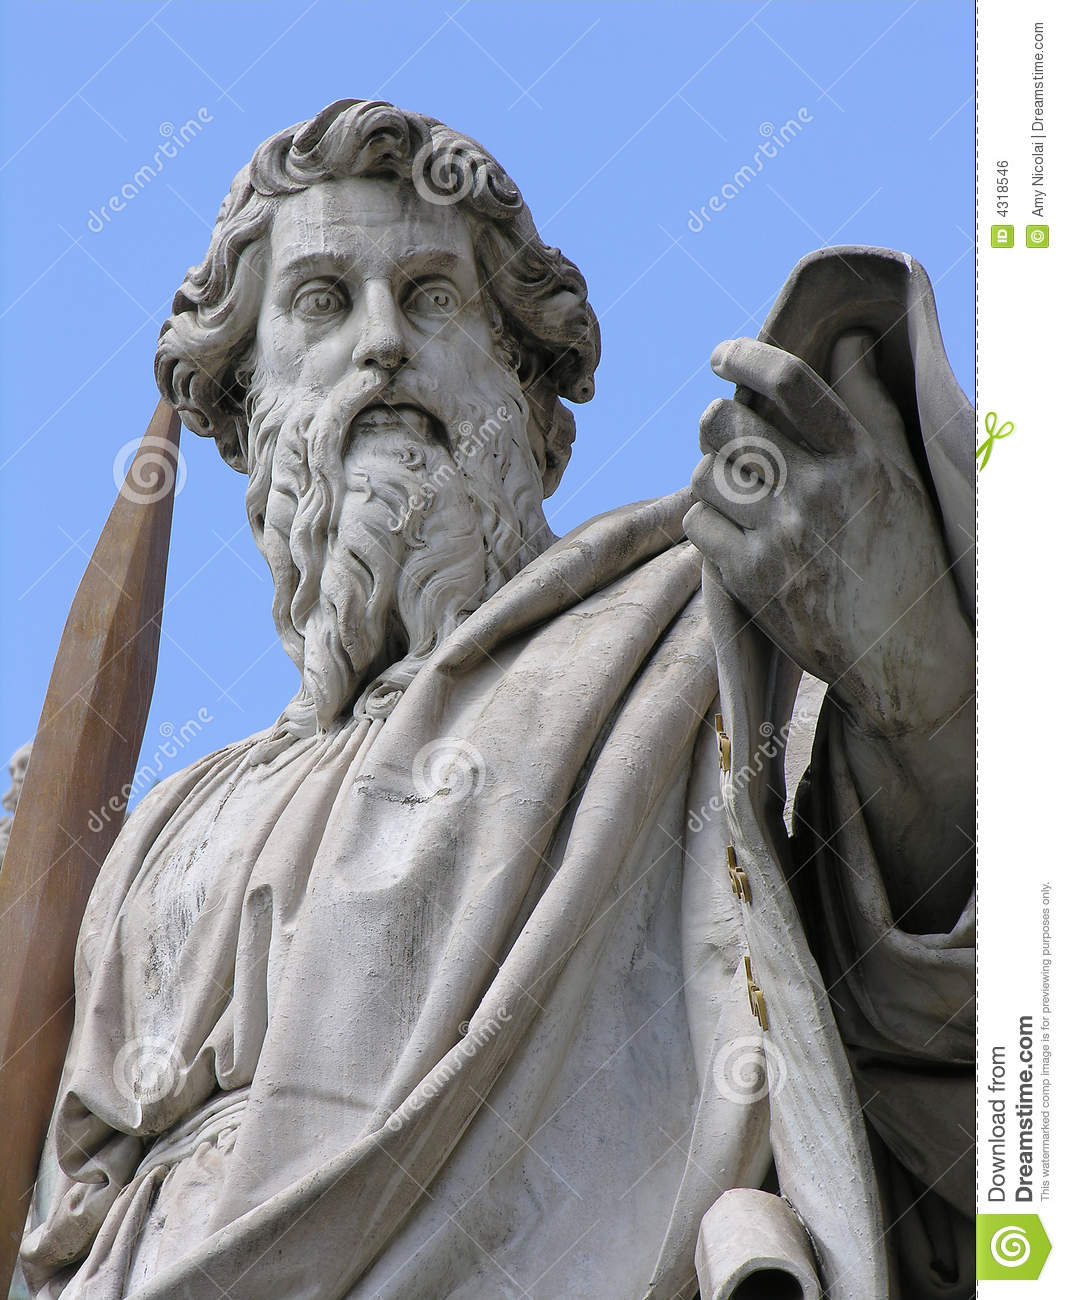 saint paul with sword royalty free stock image image